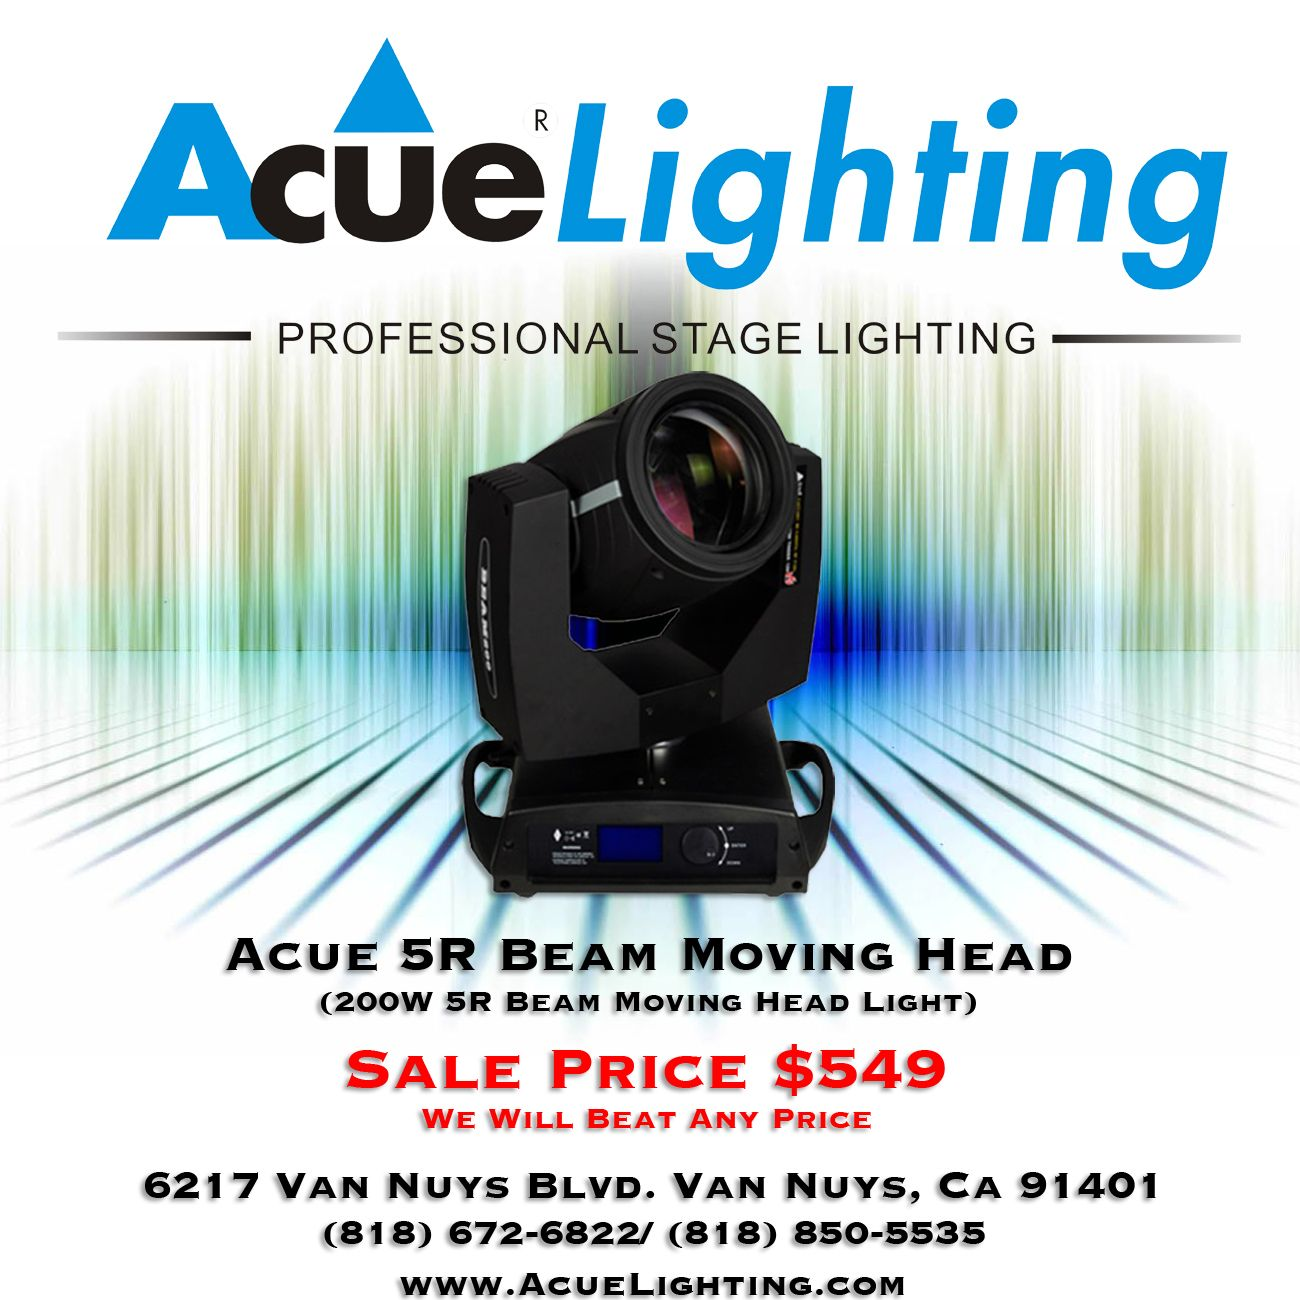 The Acue Lighting 5R Beam 200W Moving Head is the fixture